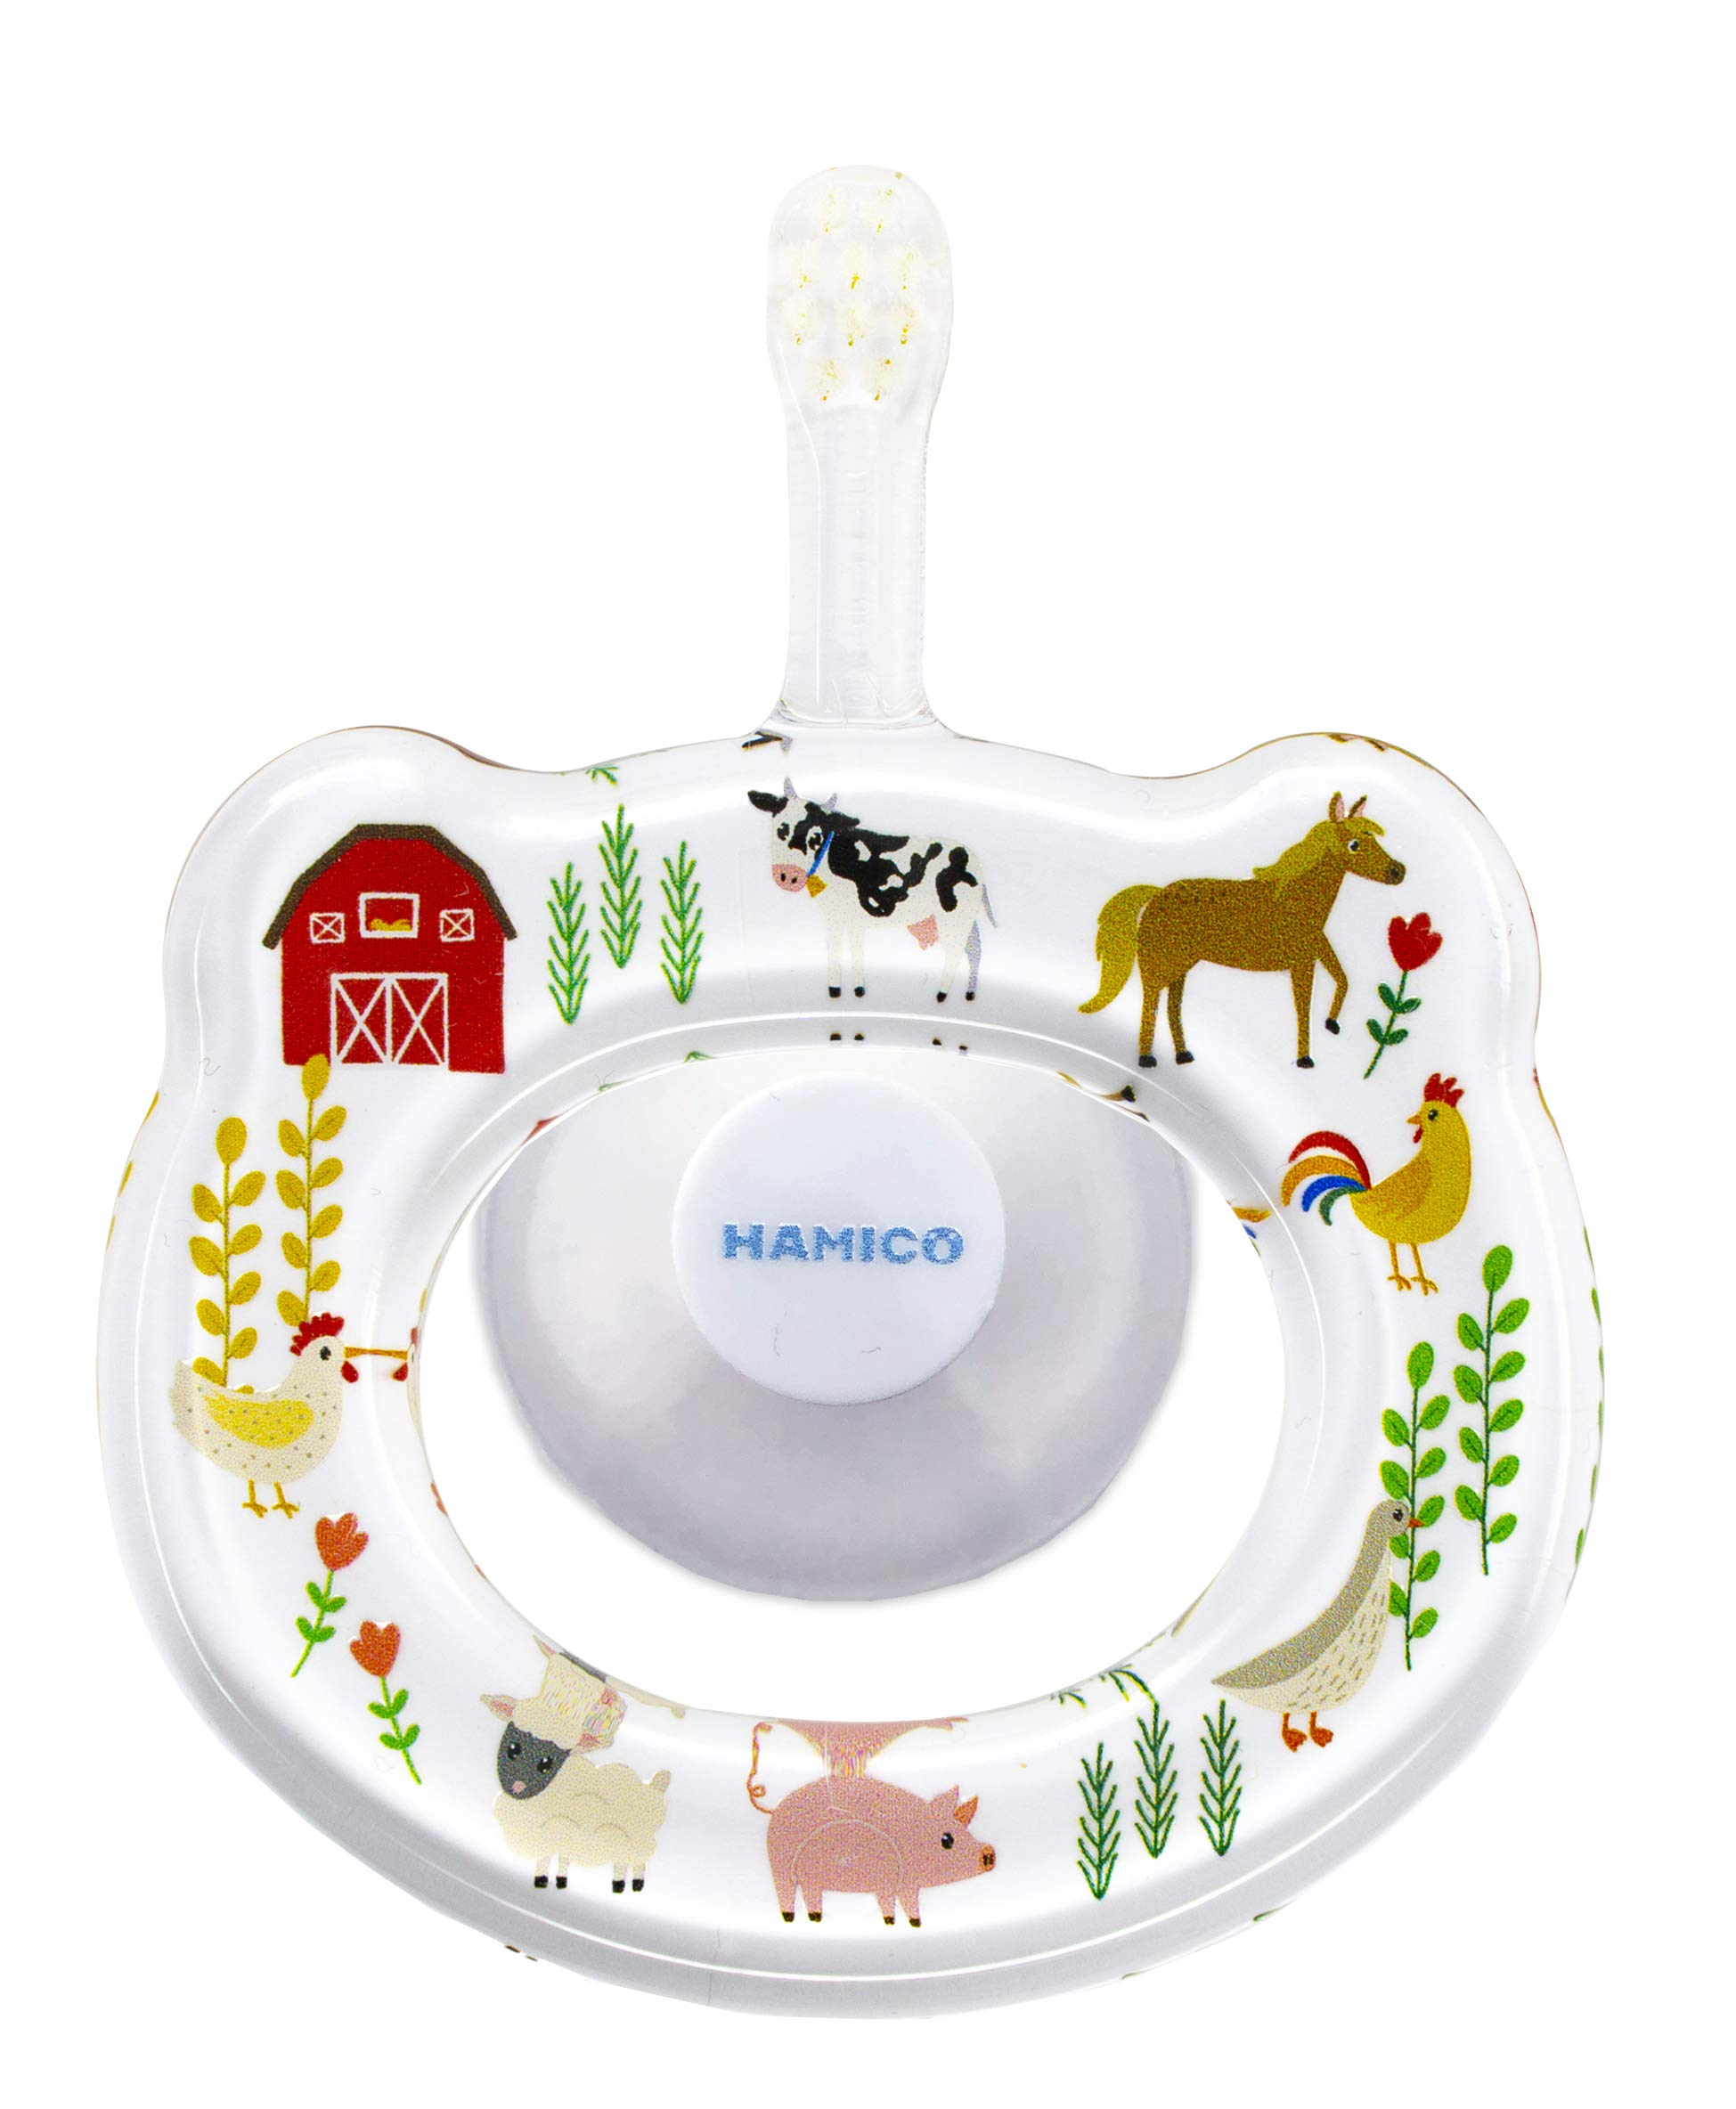 HAMICO Japanese Baby Toothbrush with Small Sized Head, Soft Bristles and Oversized, Easy to Hold Handle with Suction Cup Holder (Farm Animals) by HAMICO